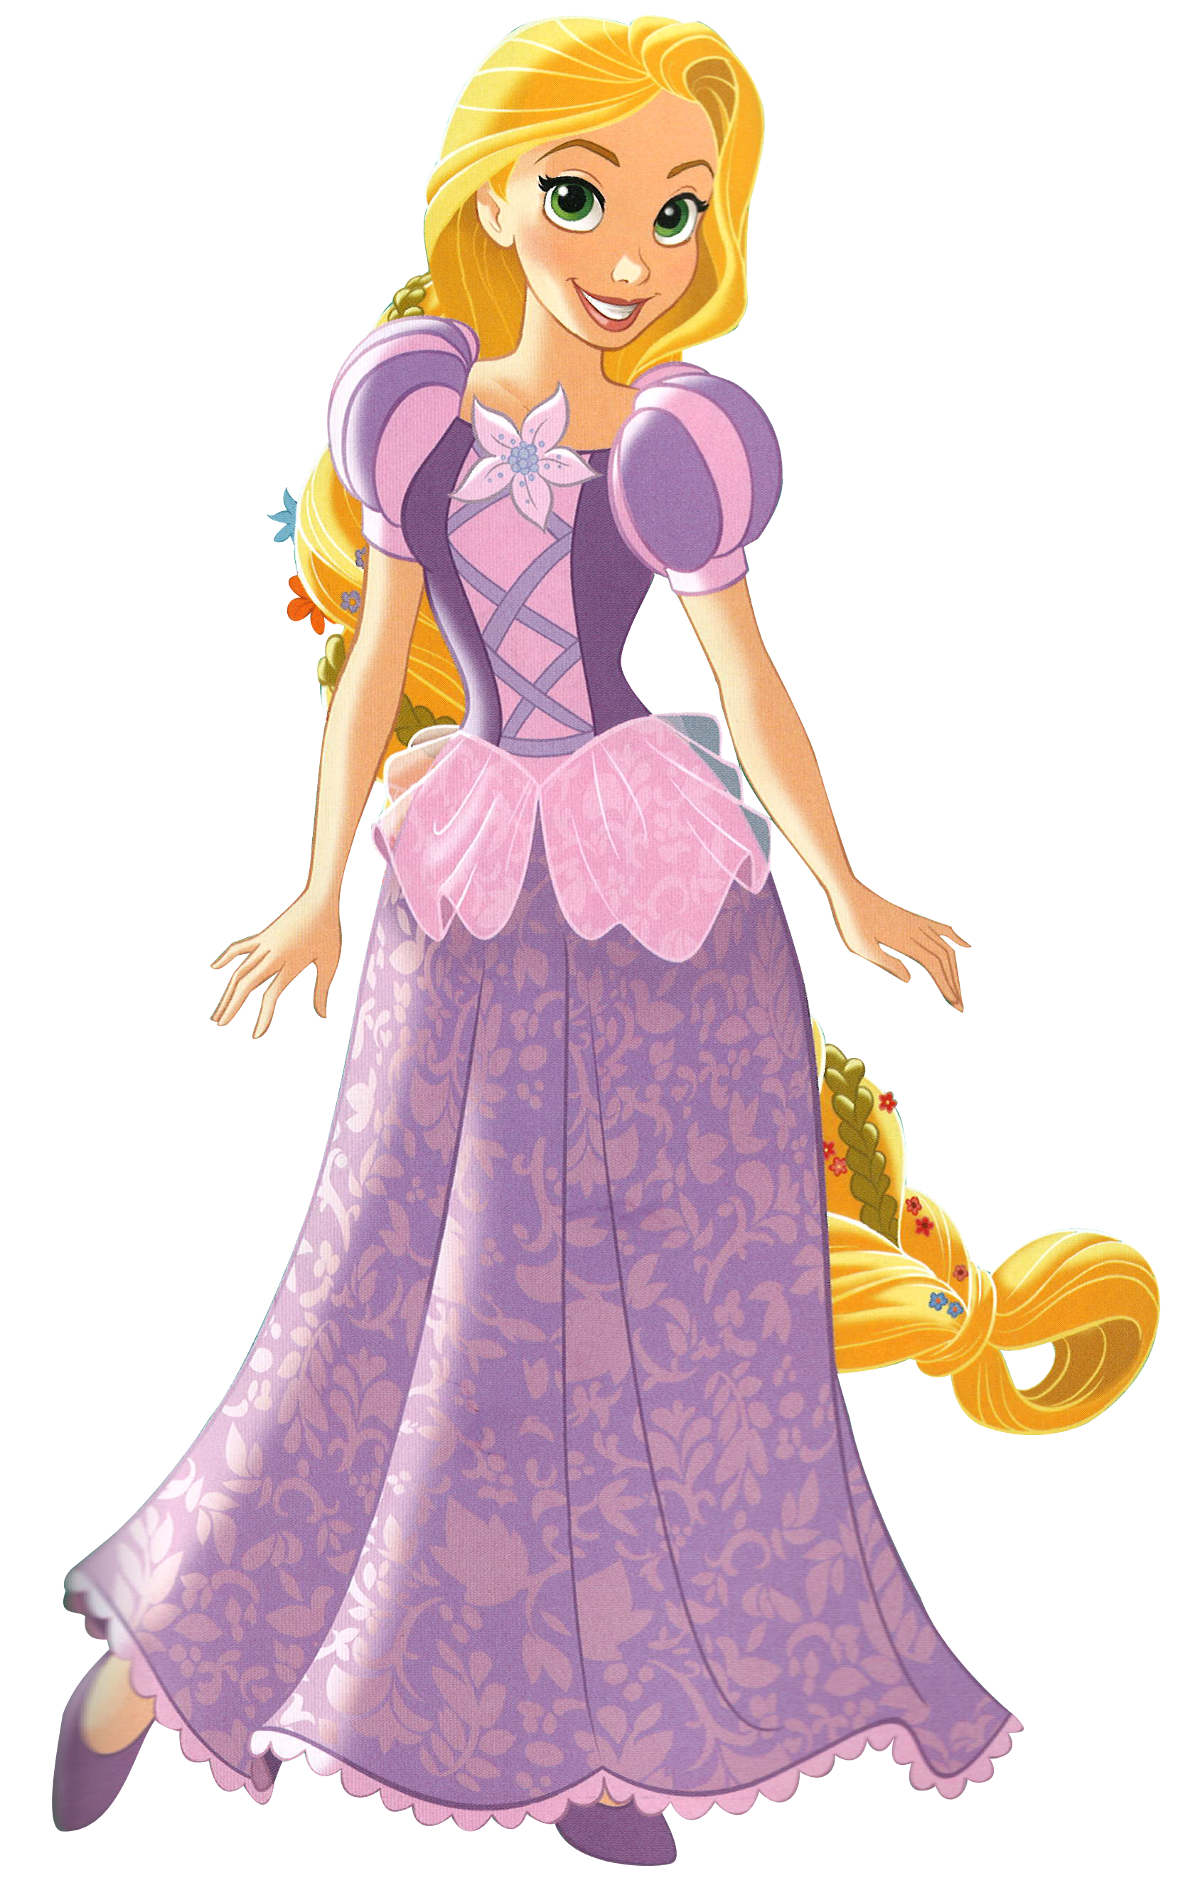 Png file disney princess. Rapunzel clipart rapunzel short hair